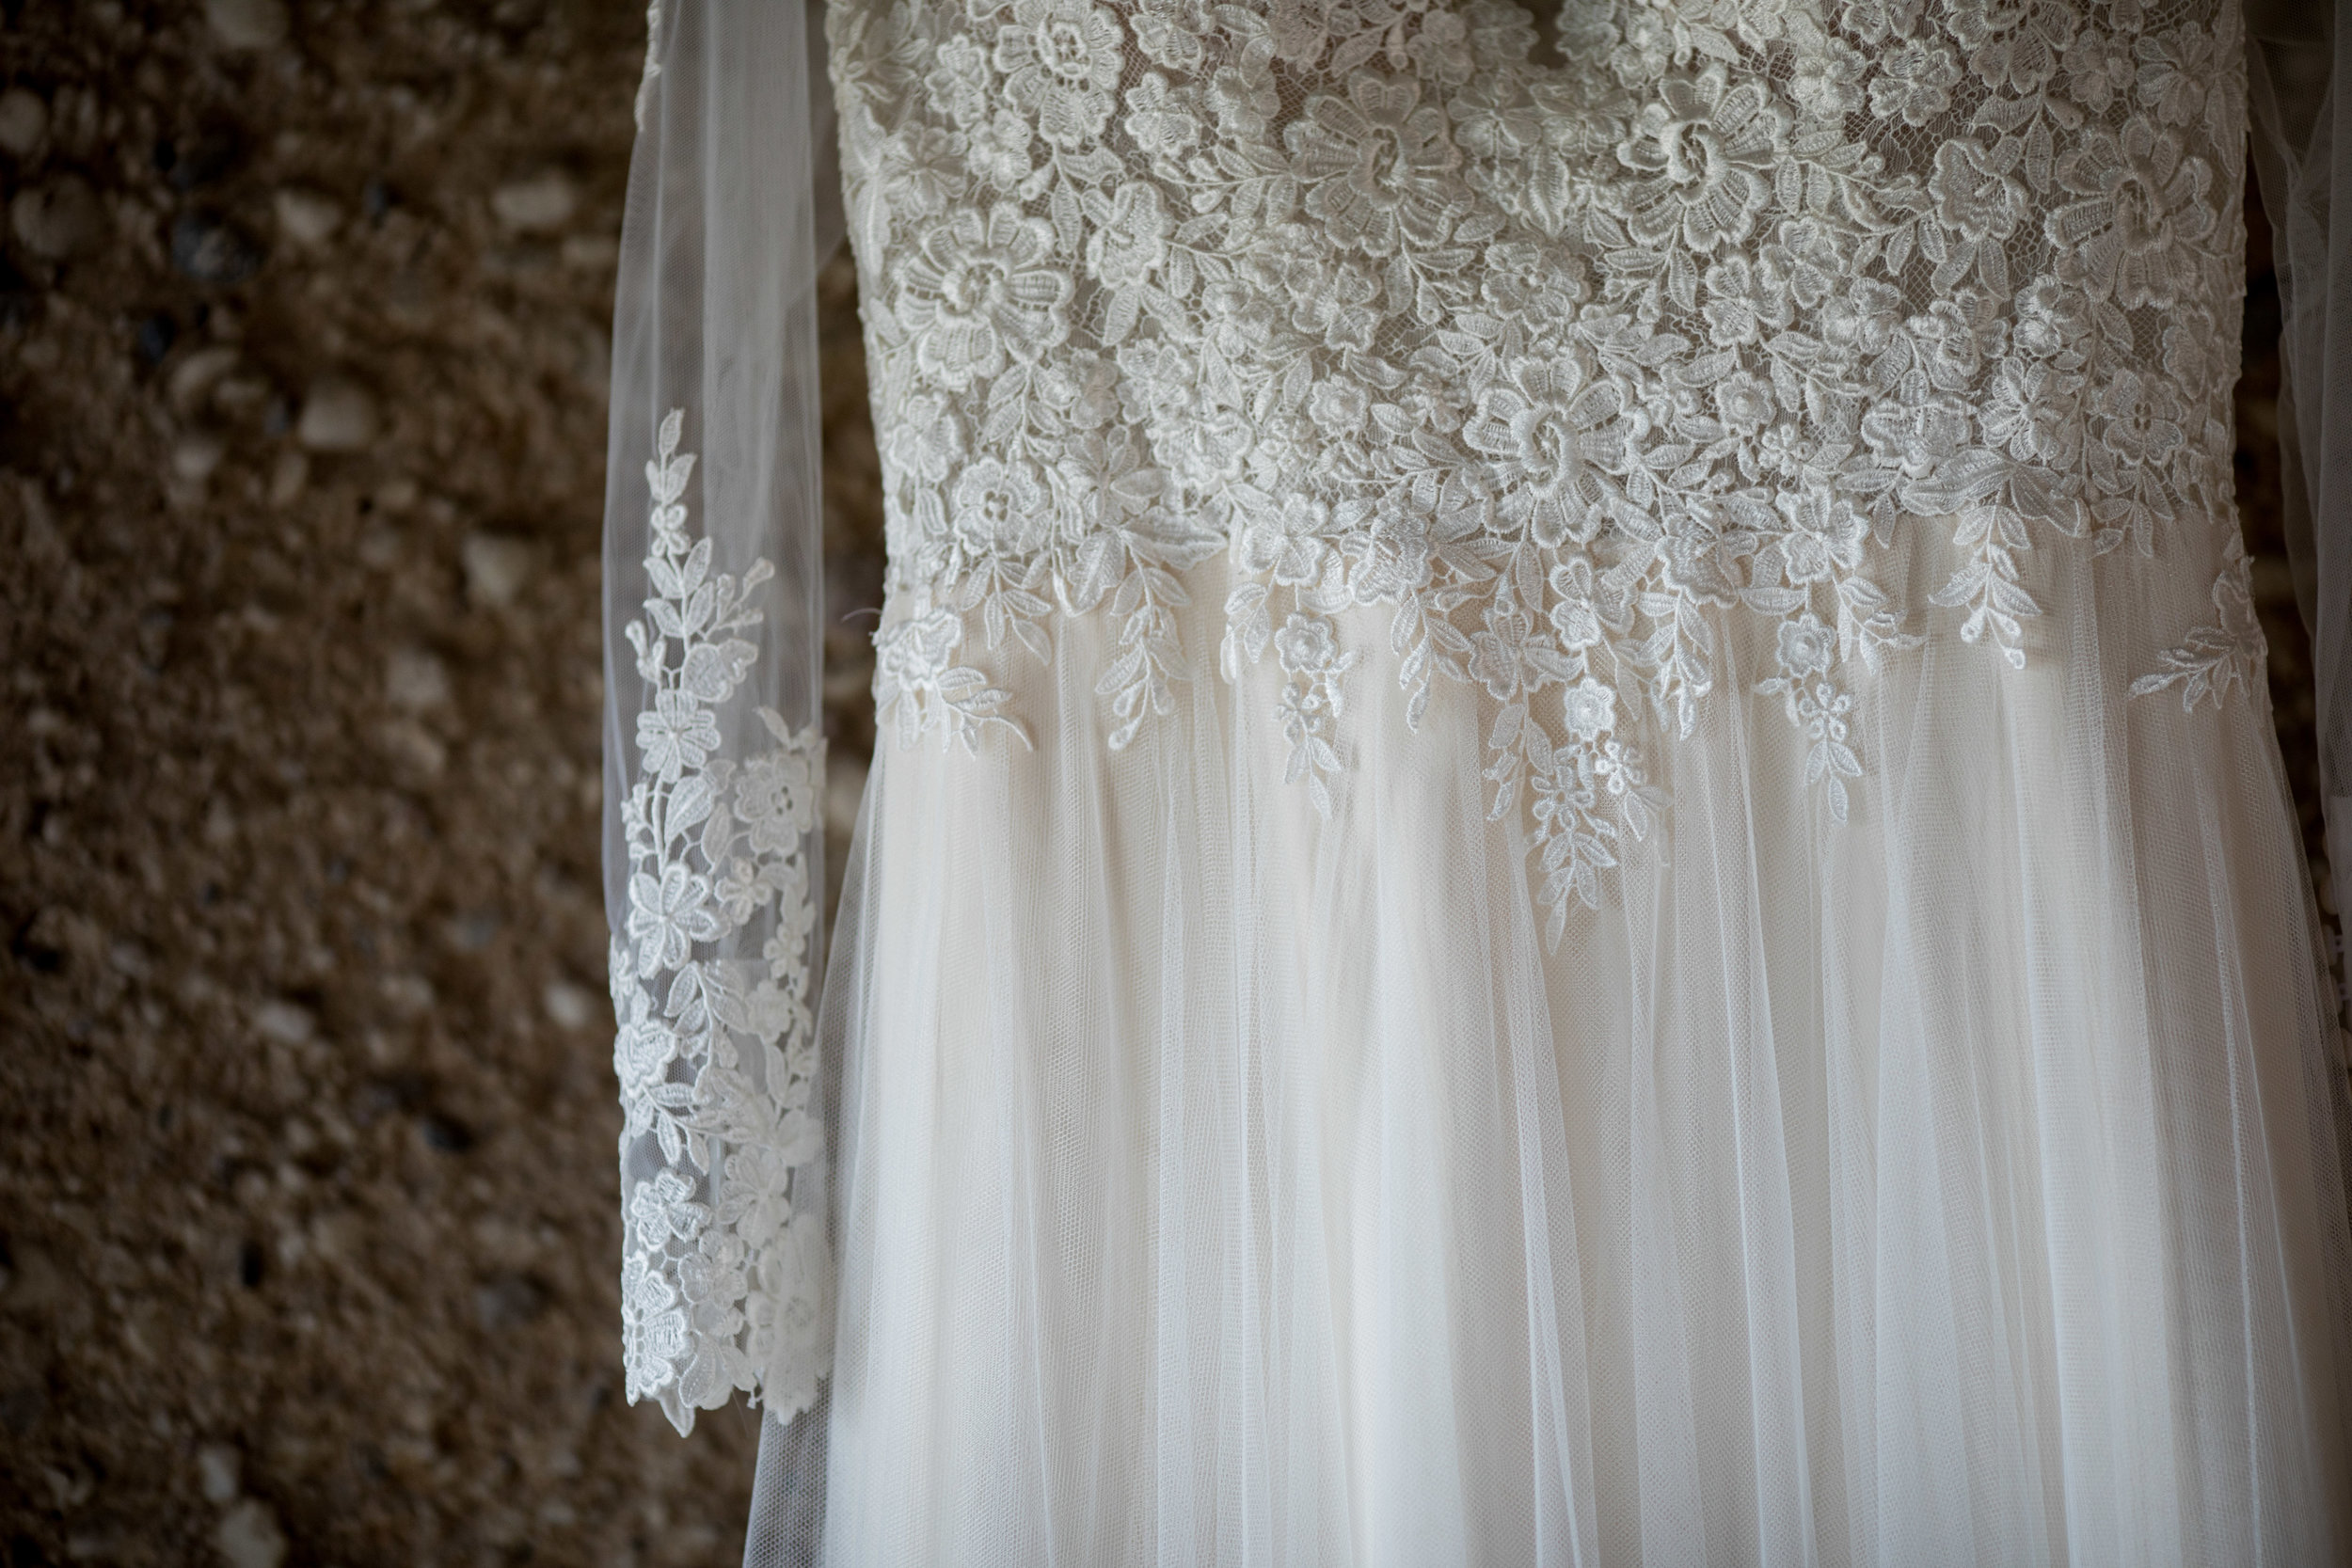 Close Up of The Dress at Barn Wedding Venue